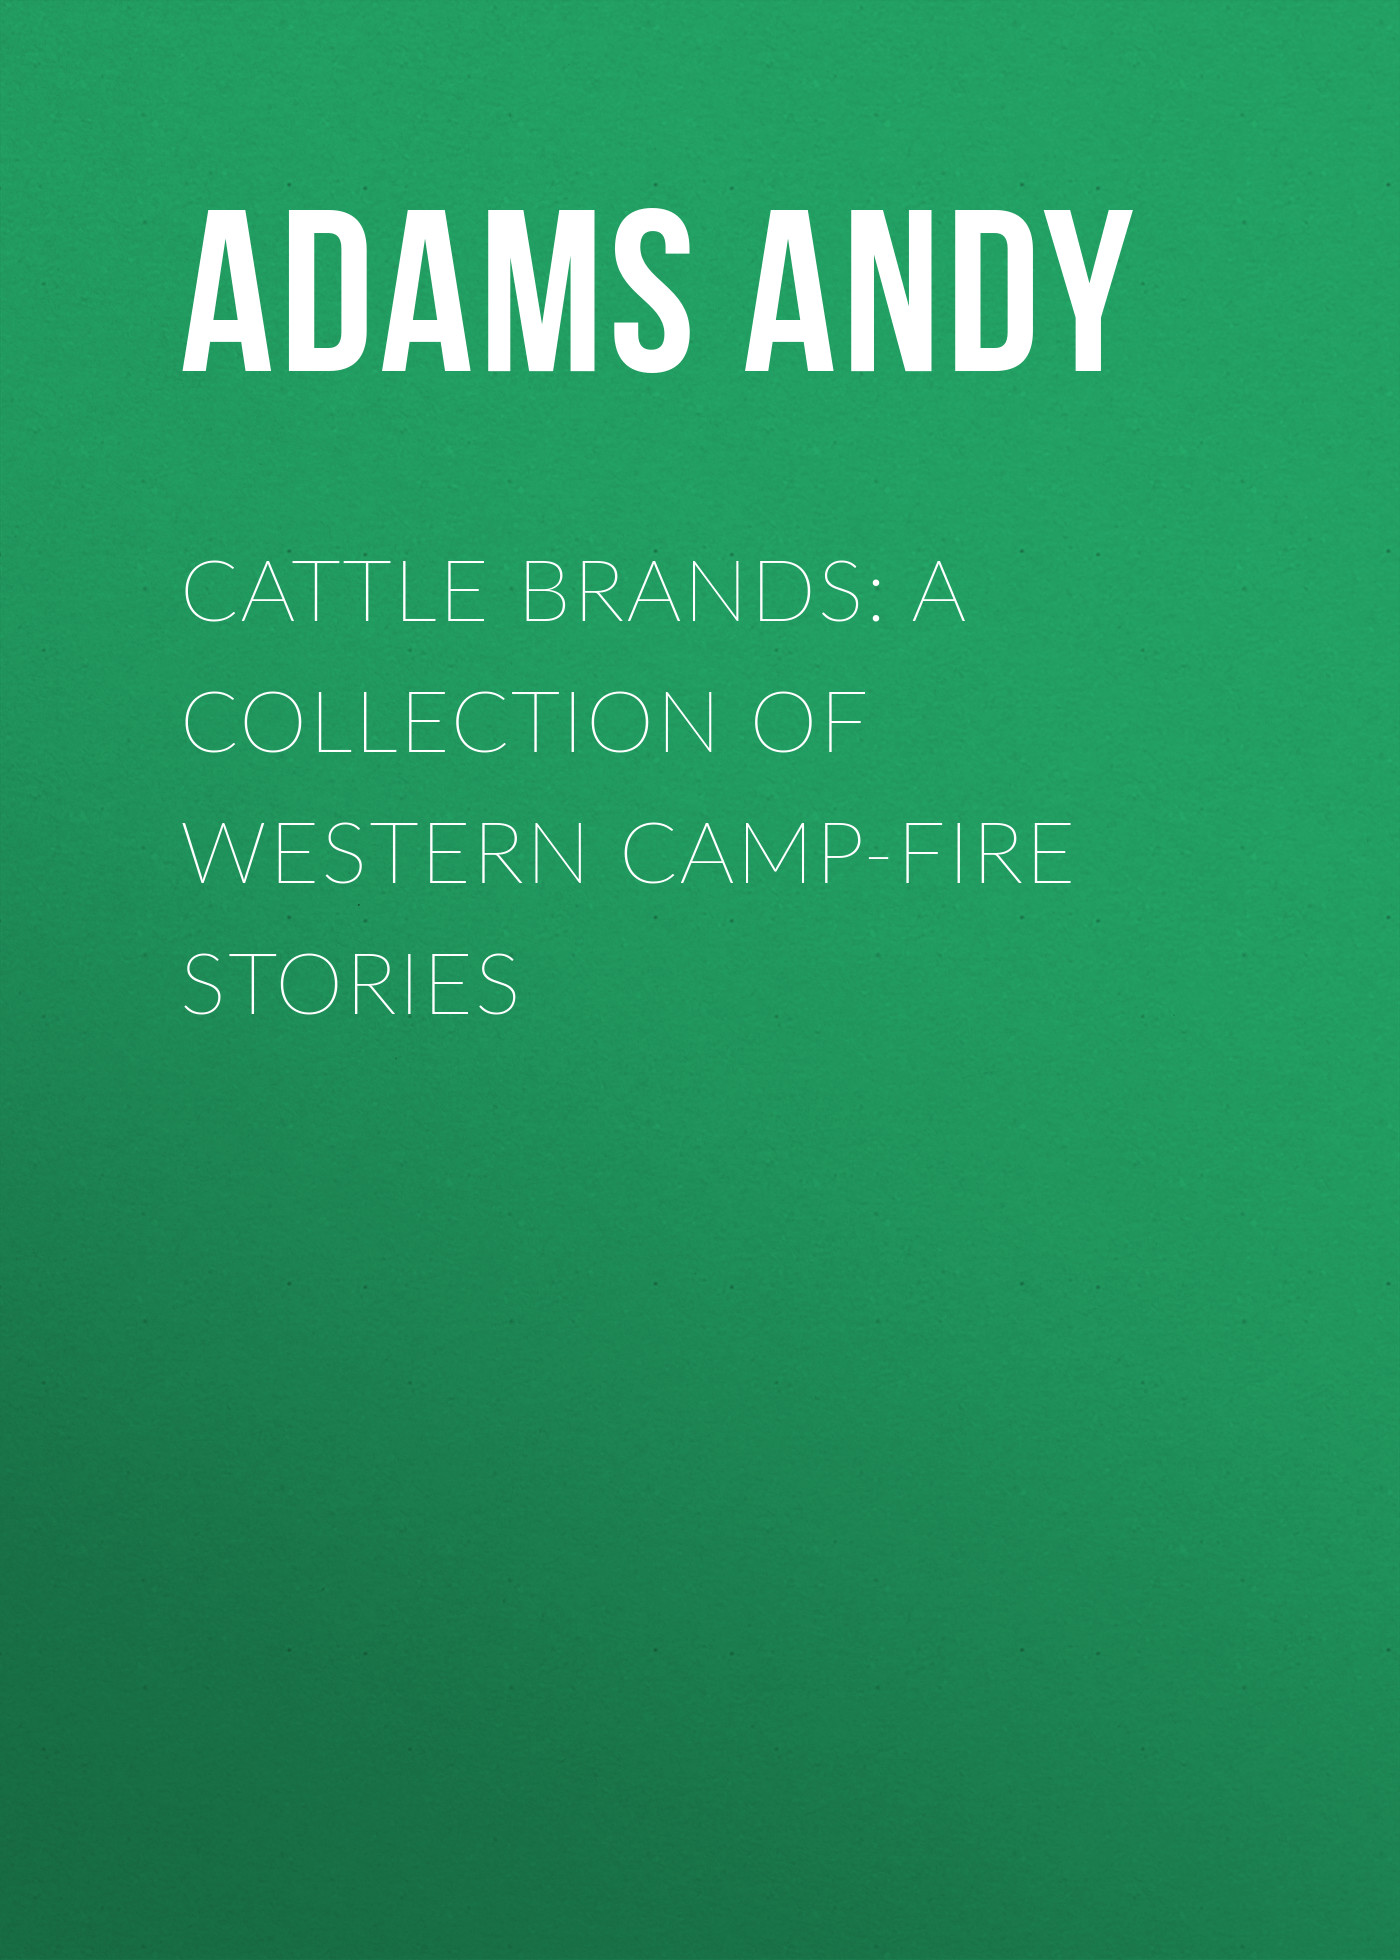 Adams Andy Cattle Brands: A Collection of Western Camp-Fire Stories